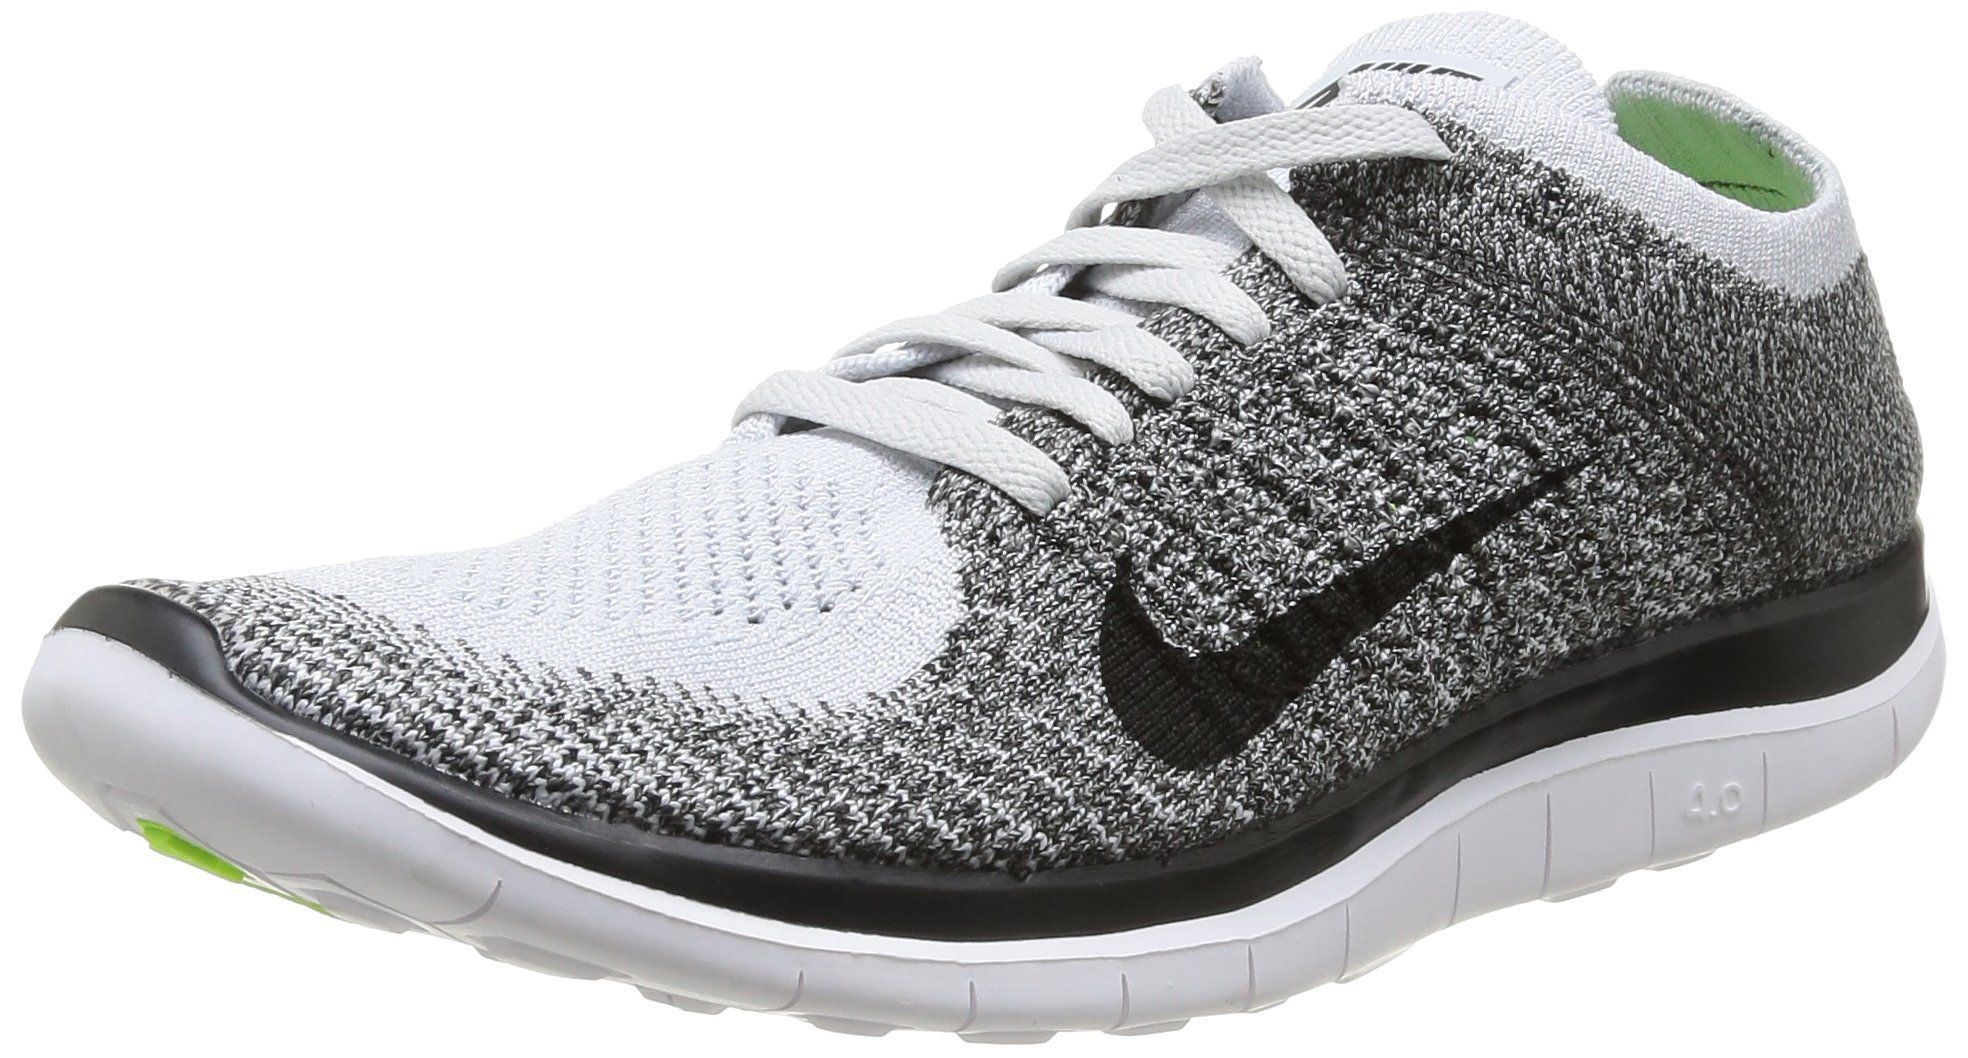 0b443cacf102bc ... black white road running c83ad 11fa9; new style amazon nike mens free  4.0 flyknit running shoe shoes 8c82a 14db4